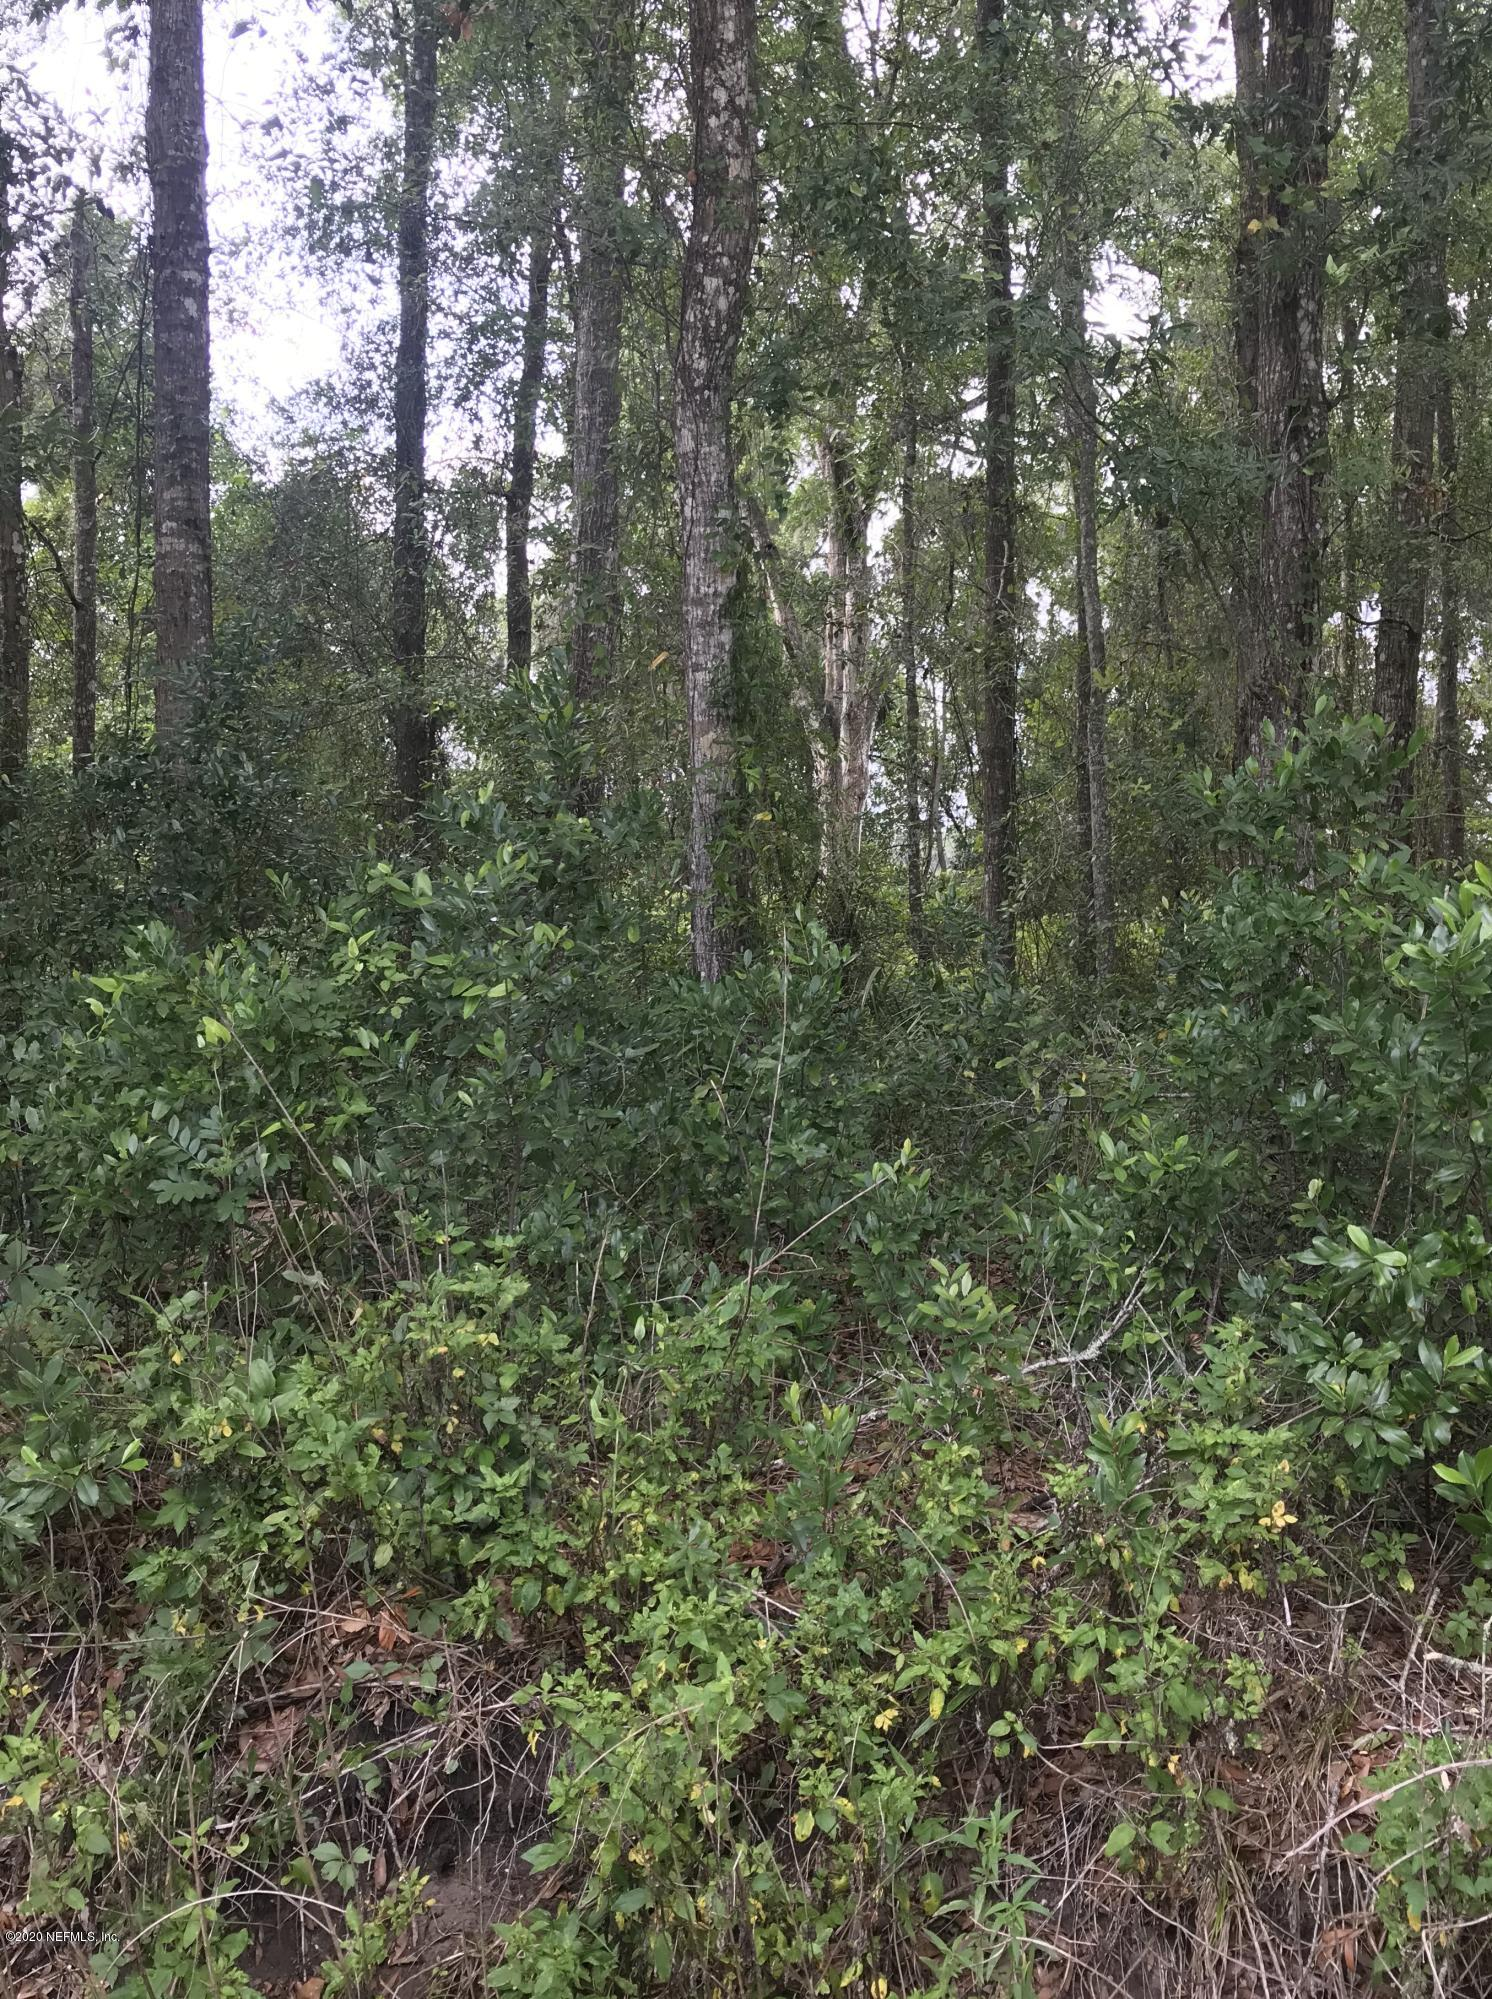 134 GEORGETOWN POINT, GEORGETOWN, FLORIDA 32139, ,Vacant land,For sale,GEORGETOWN POINT,1057021